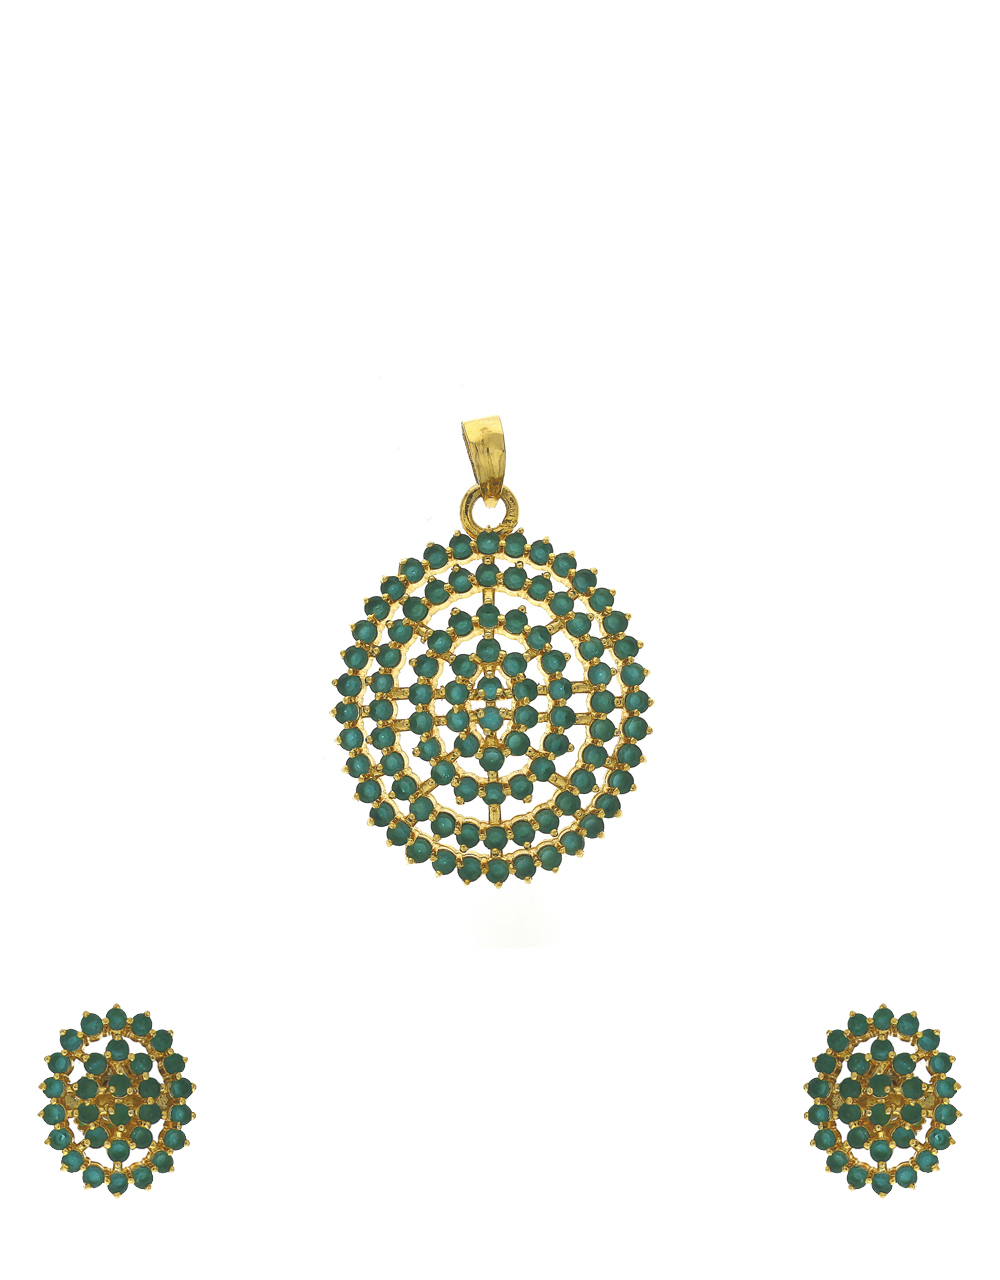 Green stones and studded pendant set with earrings